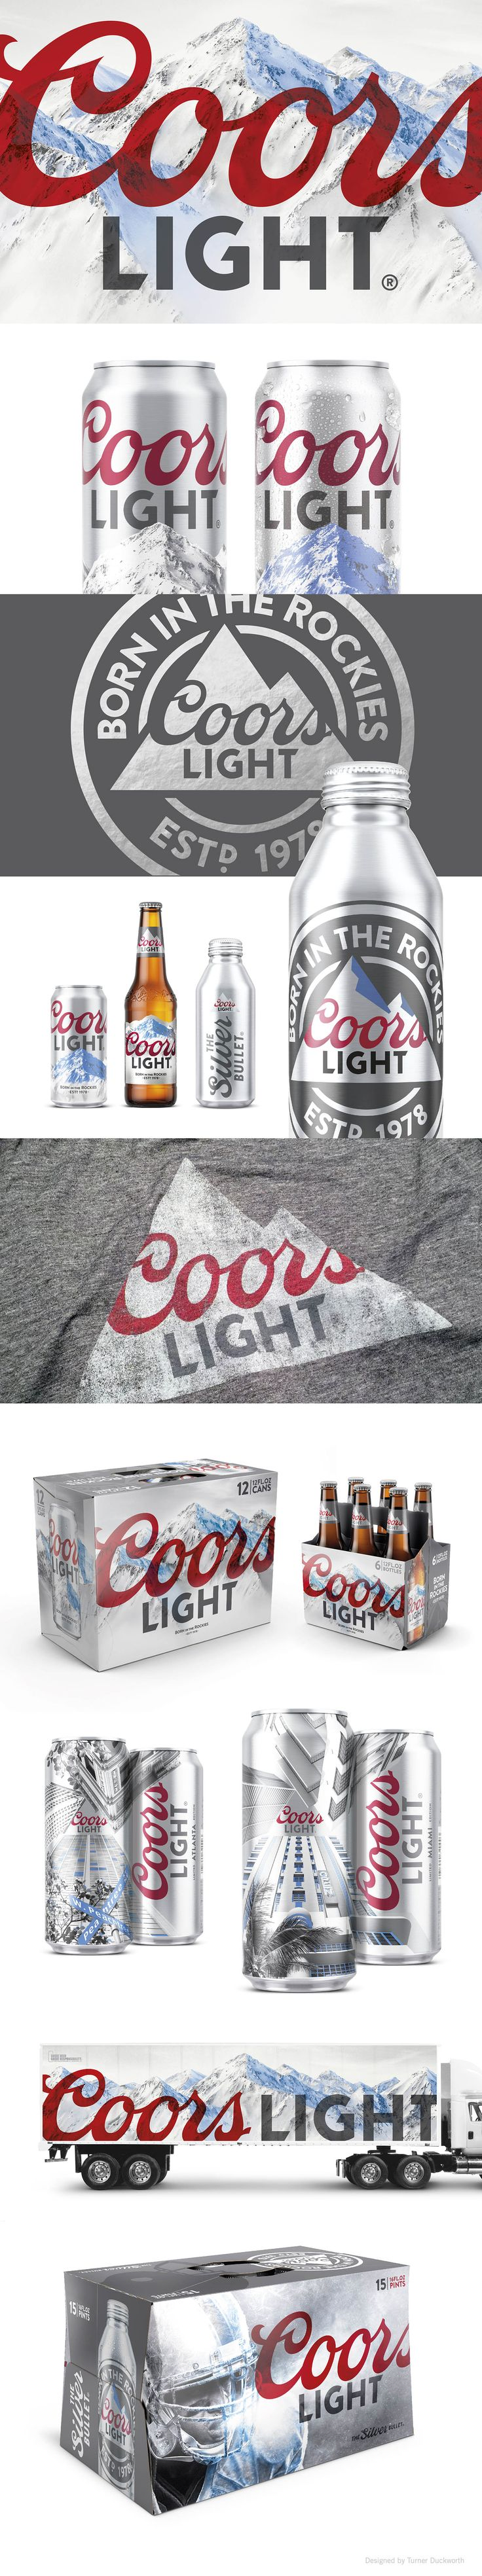 Coors Light Visual Identity. Design by Turner Duckworth. #Identity